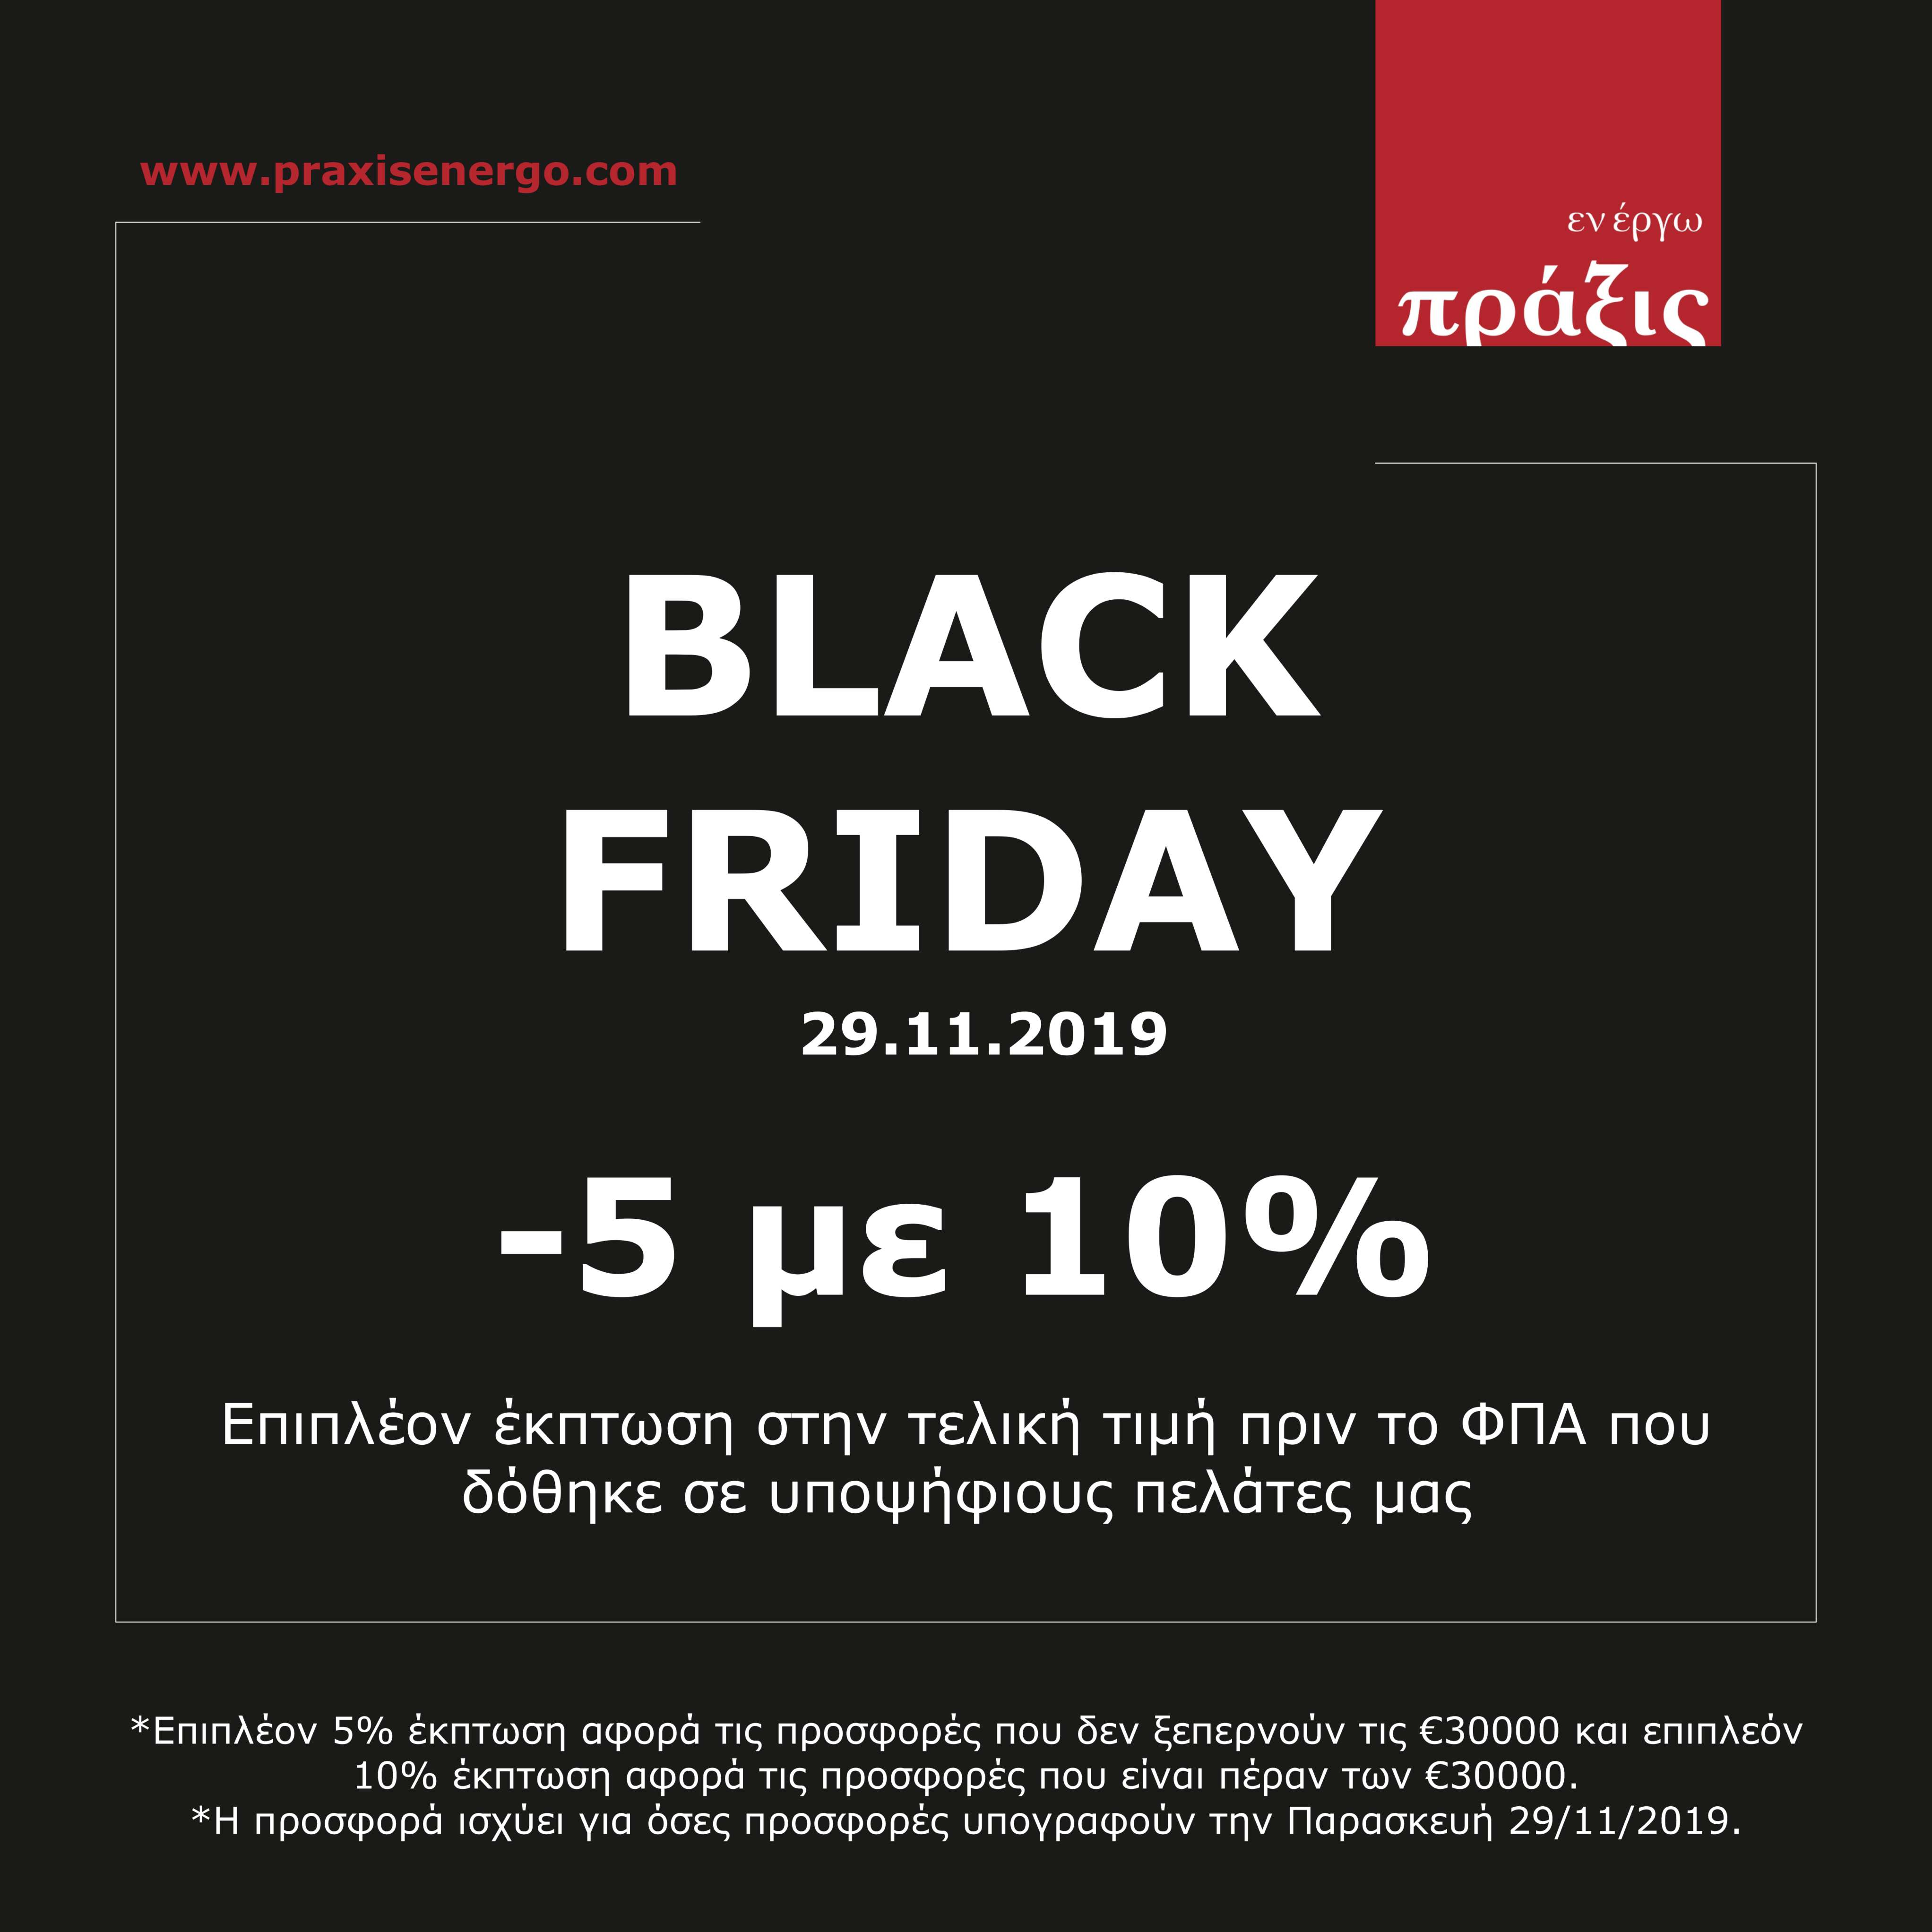 Praxisenergo - Black Friday